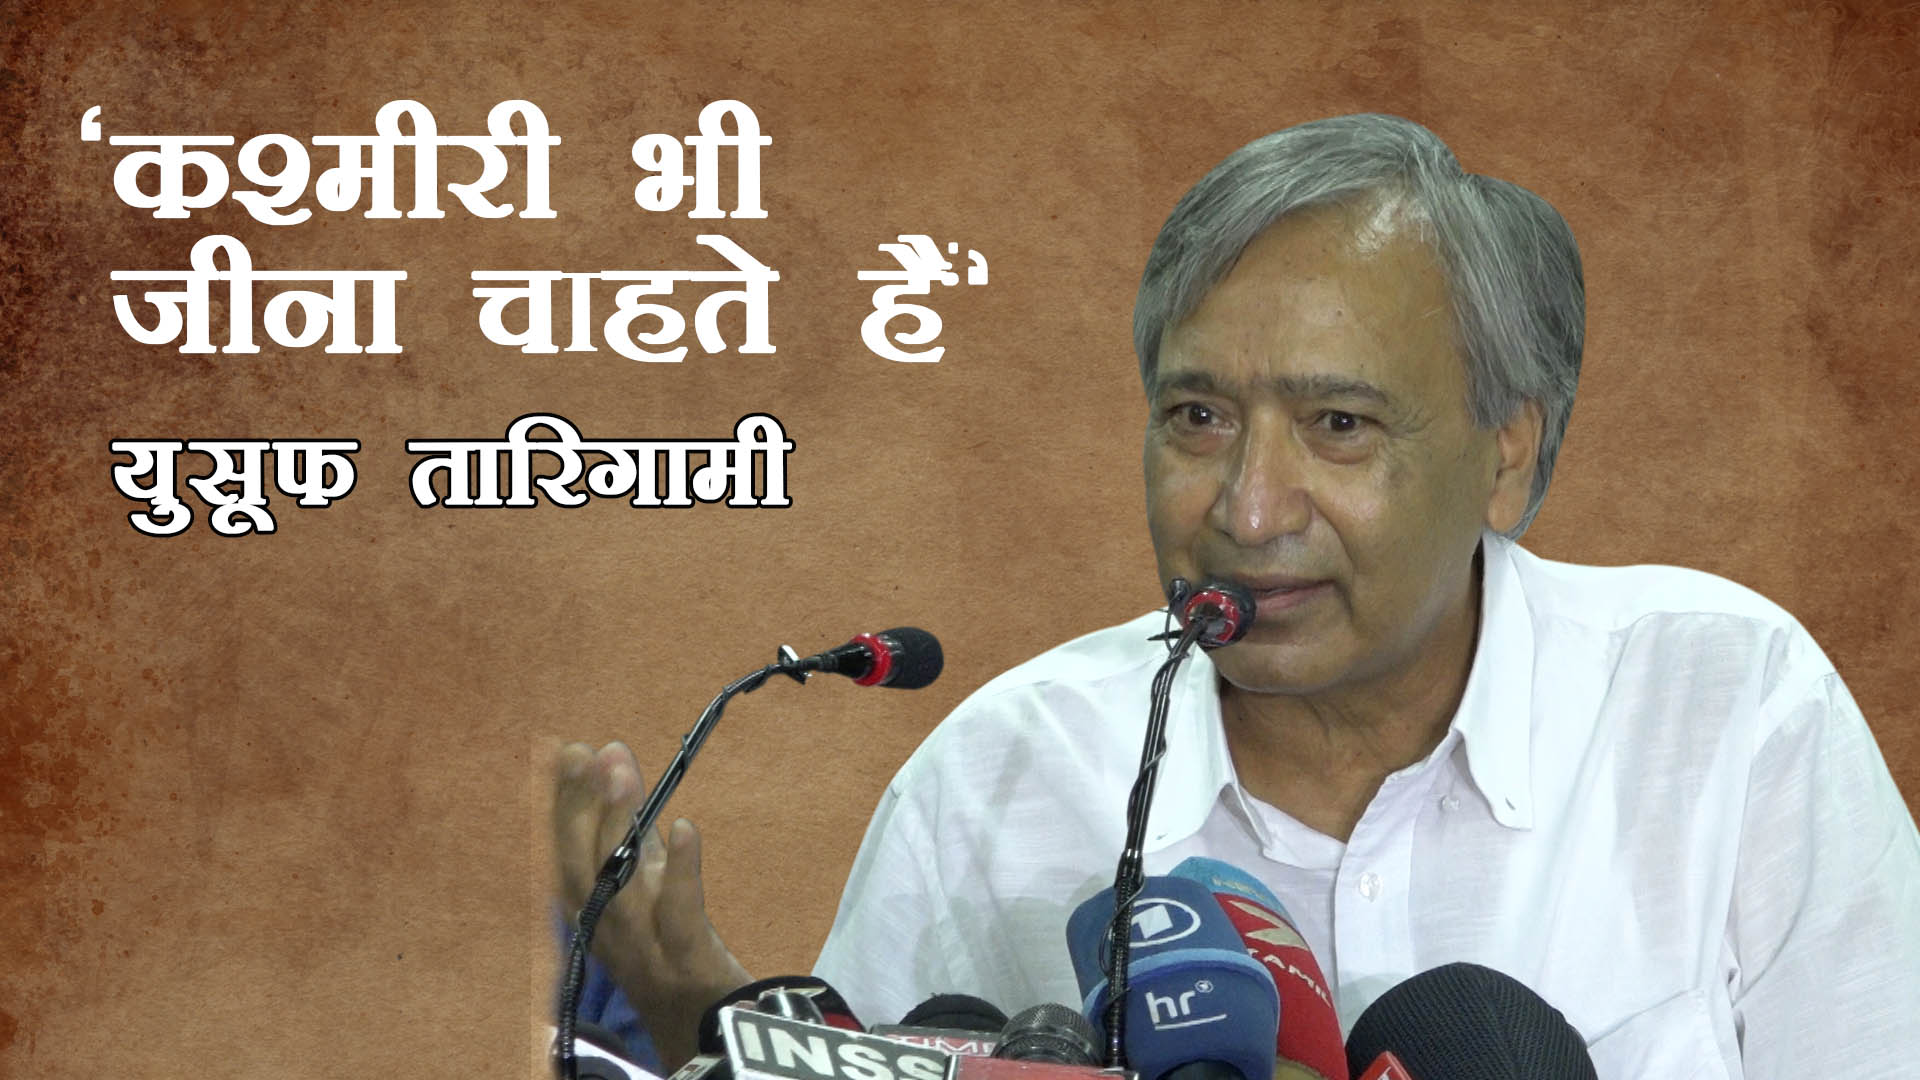 Kashmiris Also Want to Live: Yousuf Tarigami